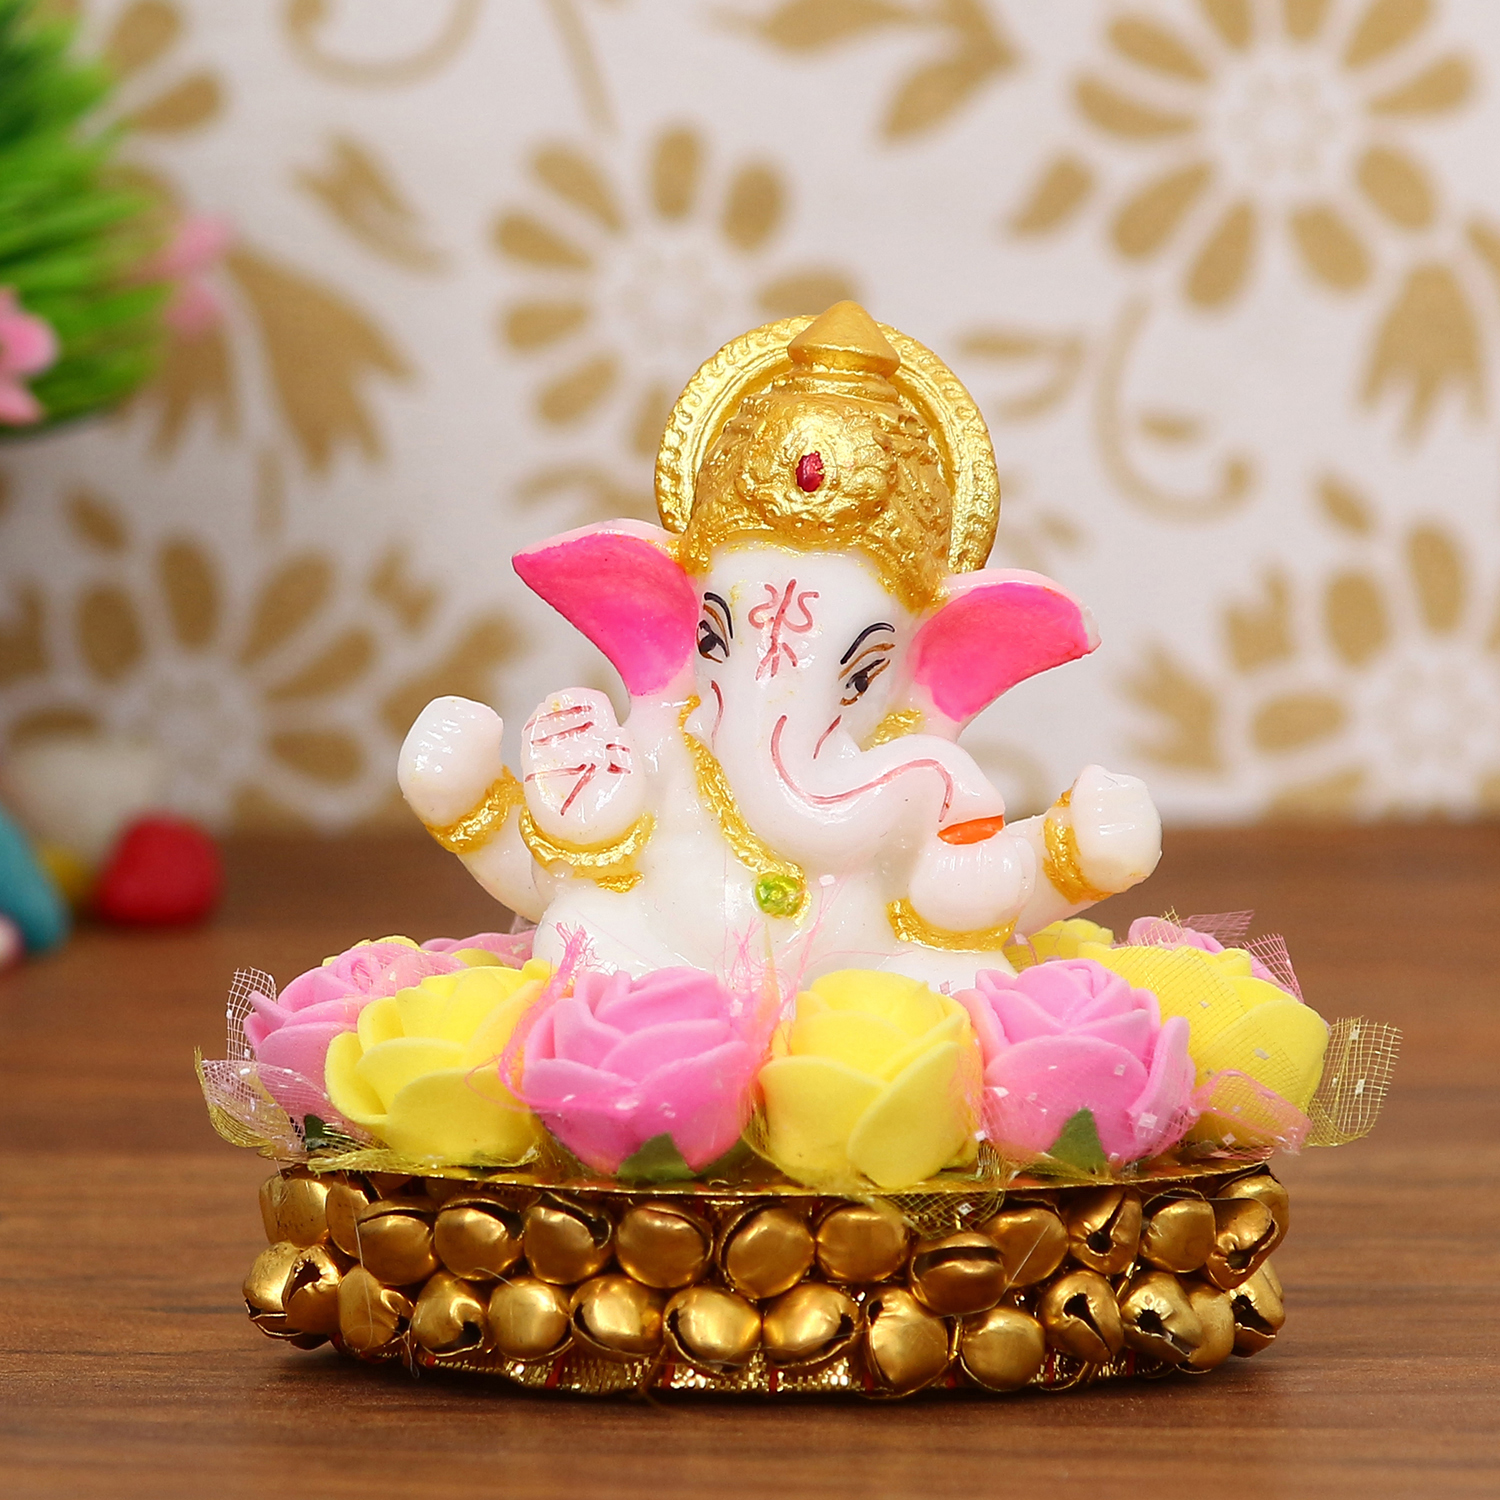 Lord Ganesha Idol on Decorative Handcrafted Plate with Pink and Yellow Flowers Indian Home Decor